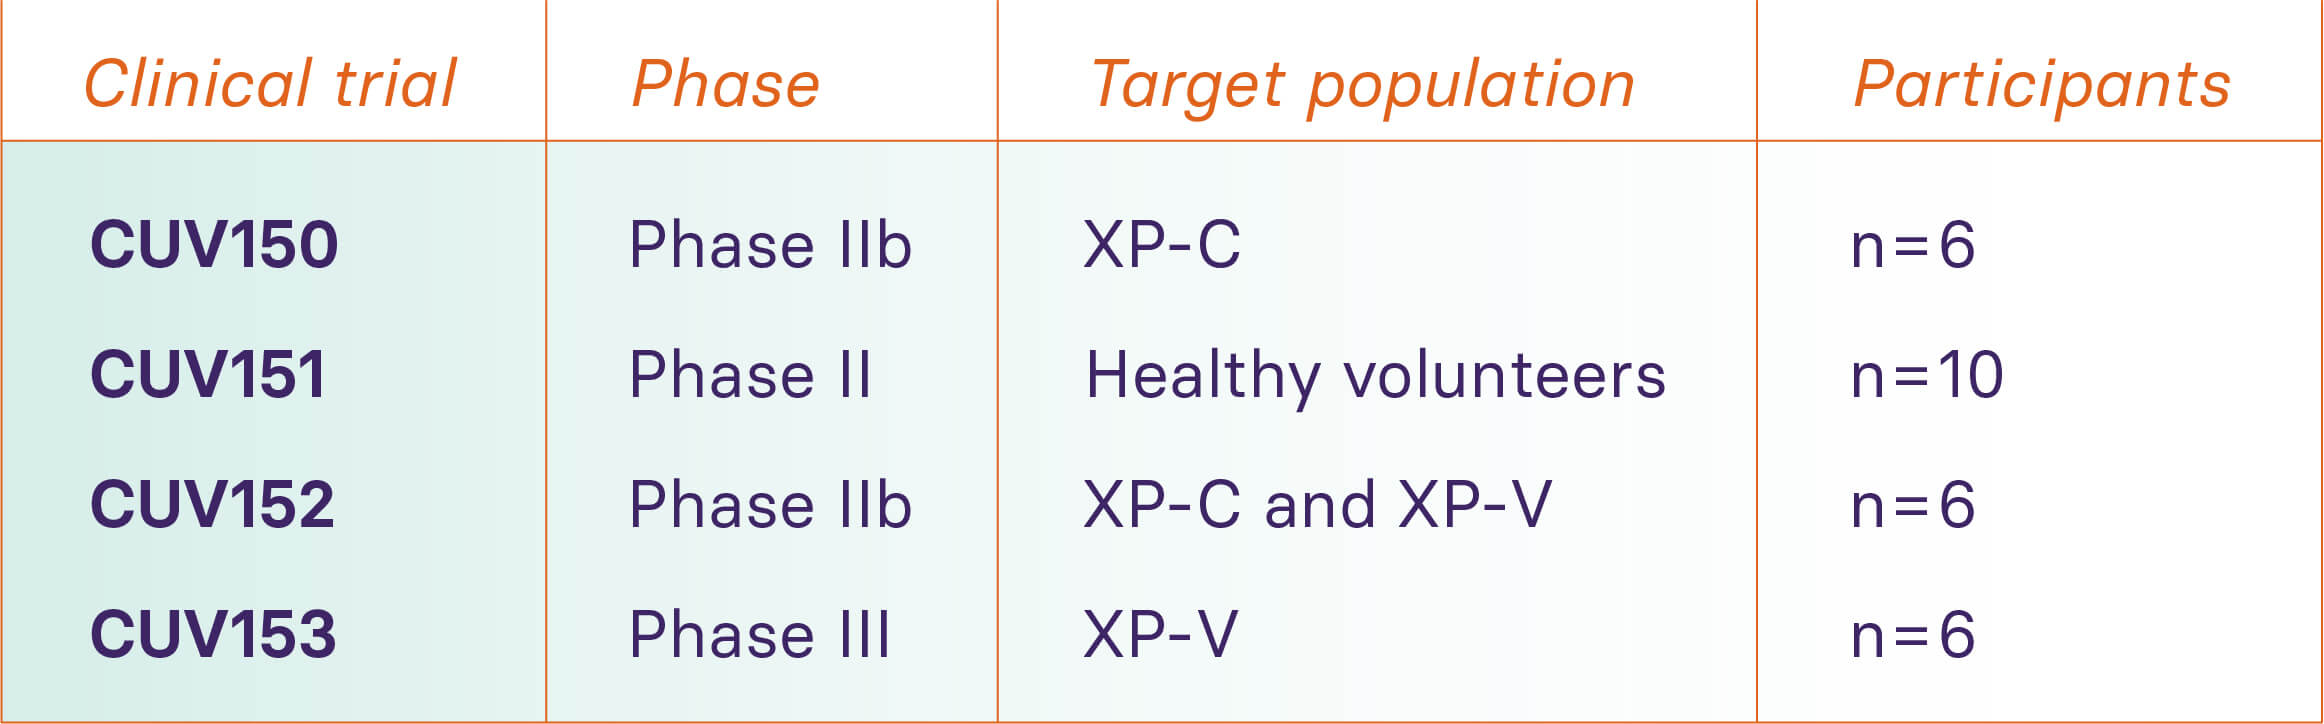 Clinical trials forming CLINUVEL's current DNA Repair Program. The Program has been expanded to evaluate afamelanotide in XP-V patients.